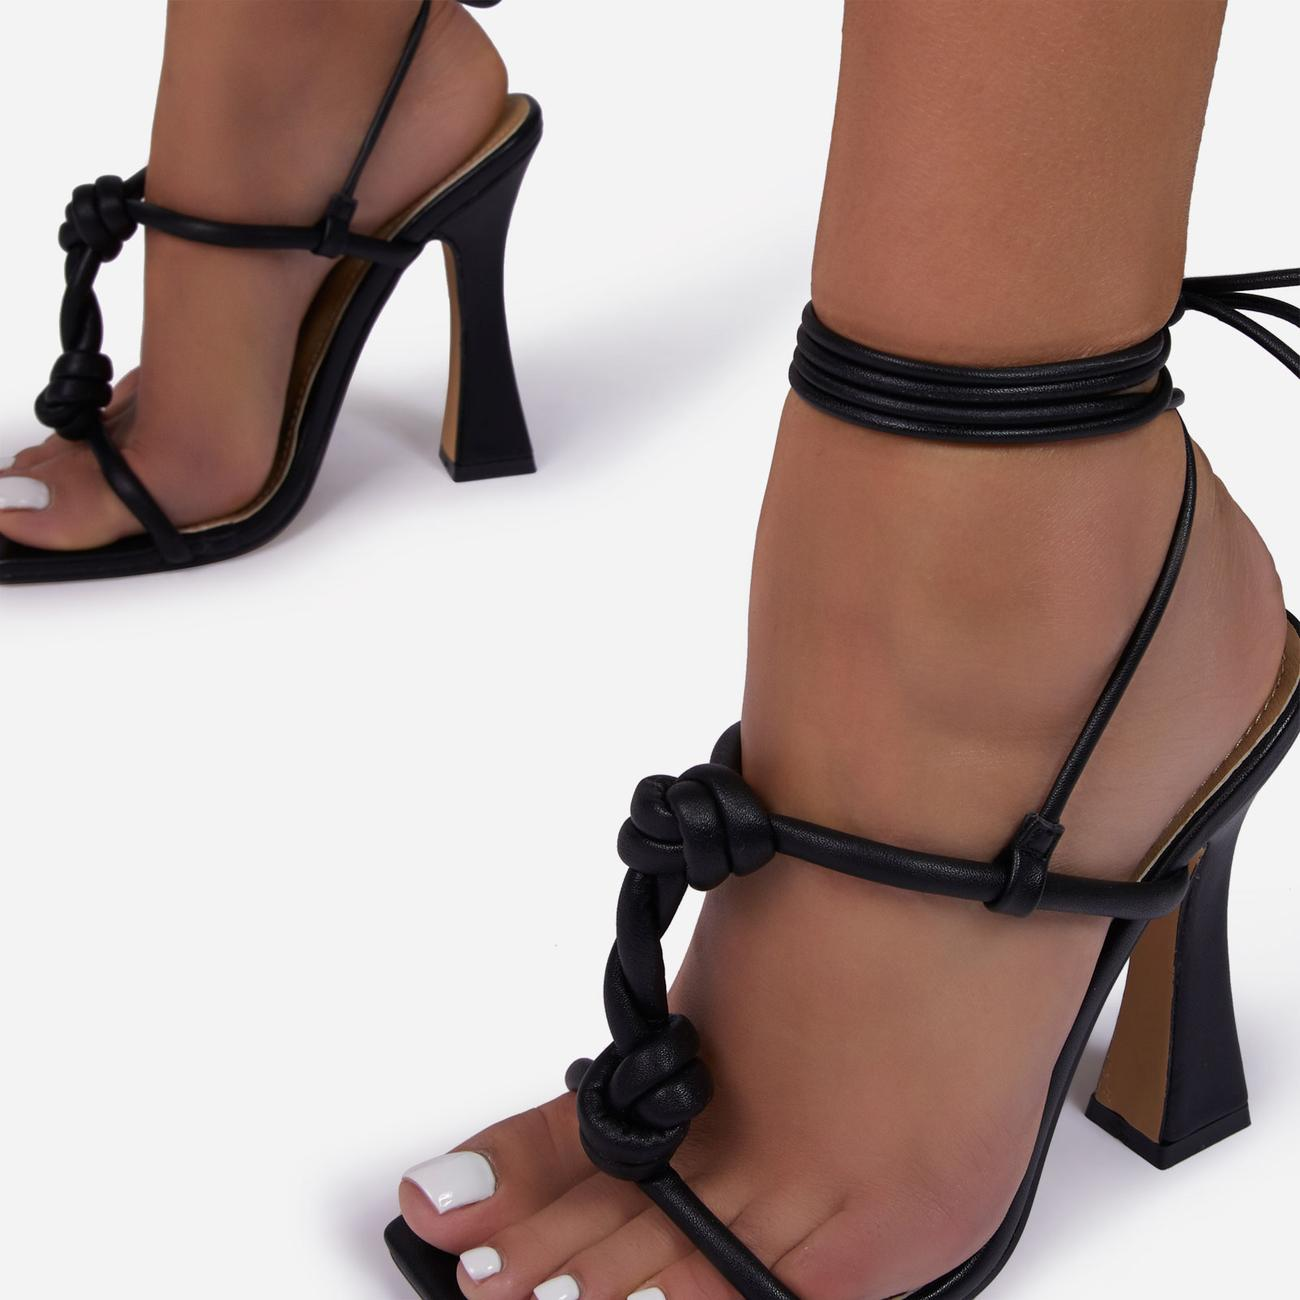 Set-Free Knotted Detail Lace Square Toe Flared Block Heel In Black Faux Leather Image 3